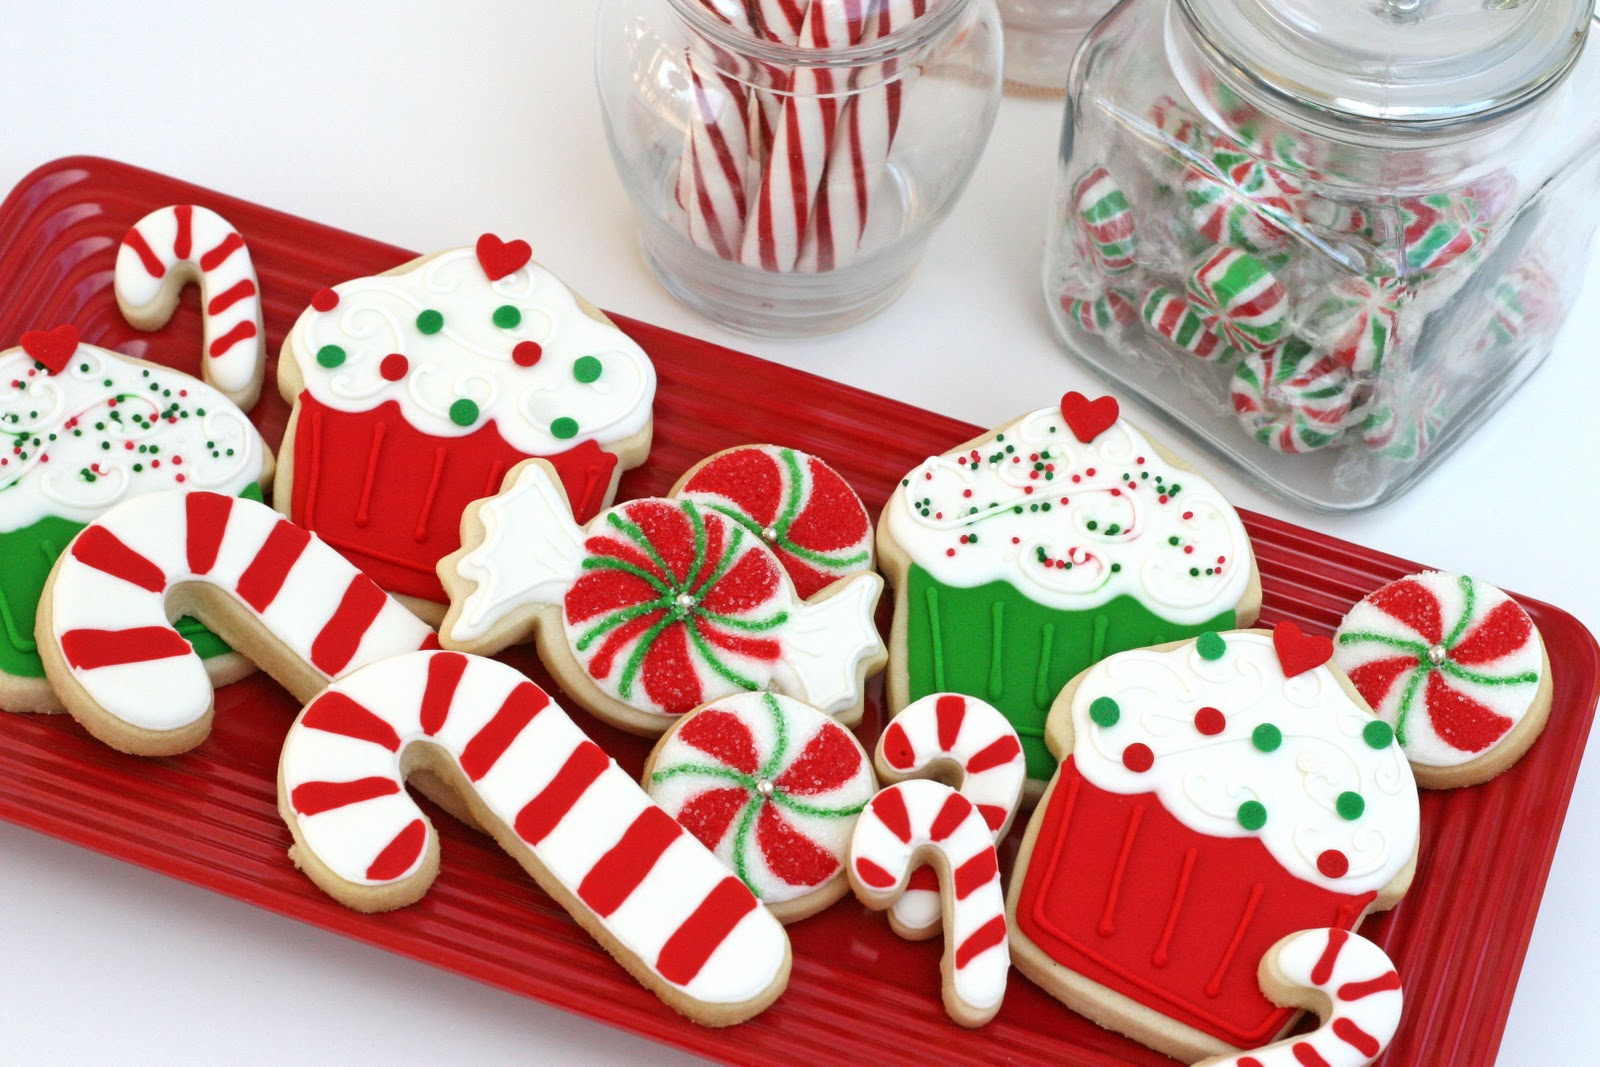 Kids Activities Xmas Cookies & Cupcake Decorating by Artea Art School Community and Party Venue